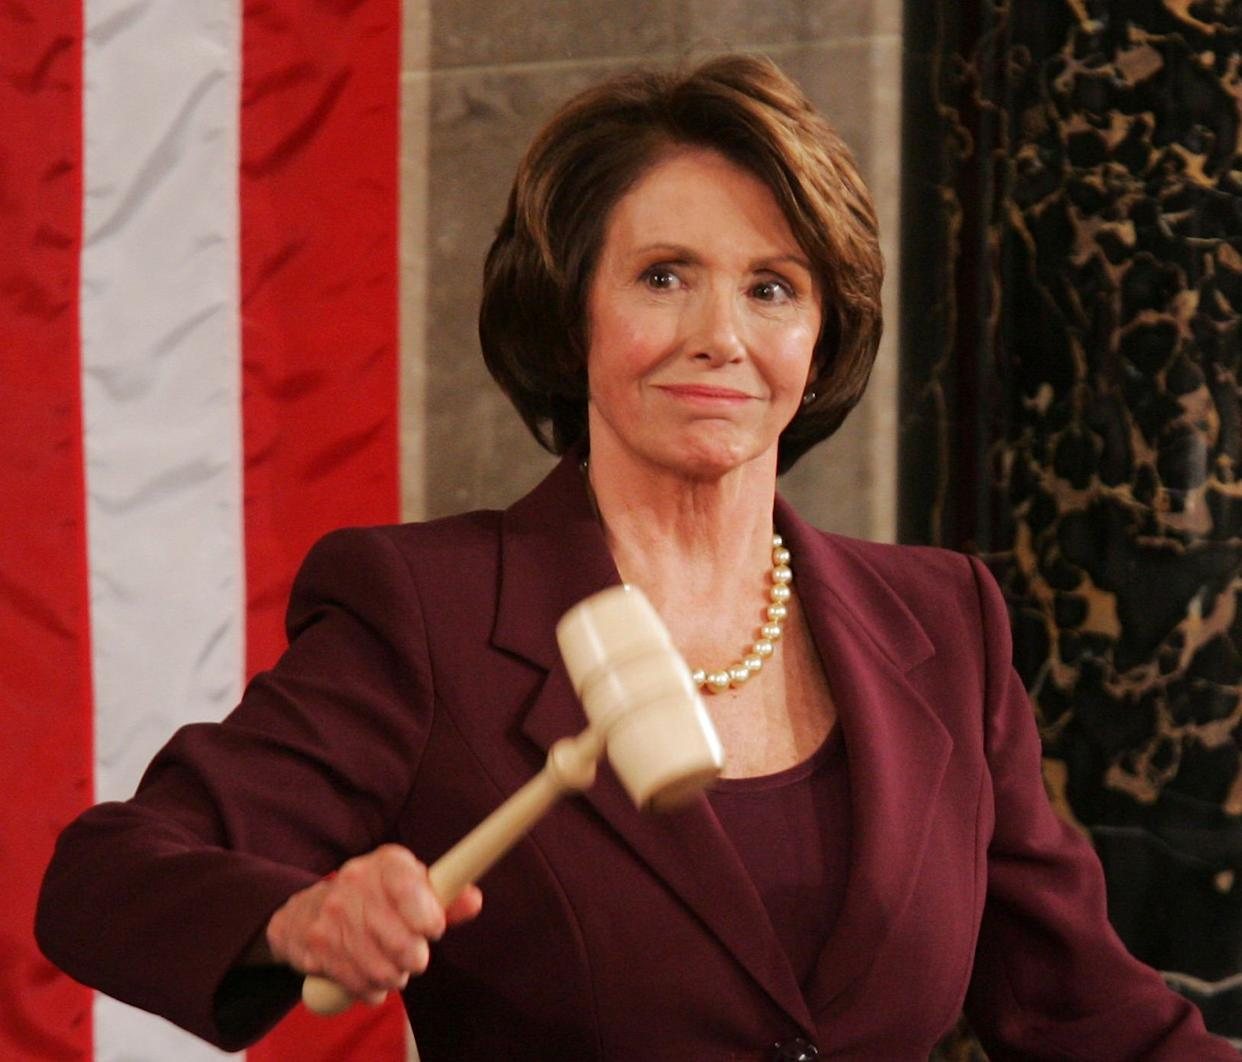 Rep. Nancy Pelosi (D-Calif.) wields the gavel in 2007 as the first woman to serve as speaker of the House. (Photo: ASSOCIATED PRESS)